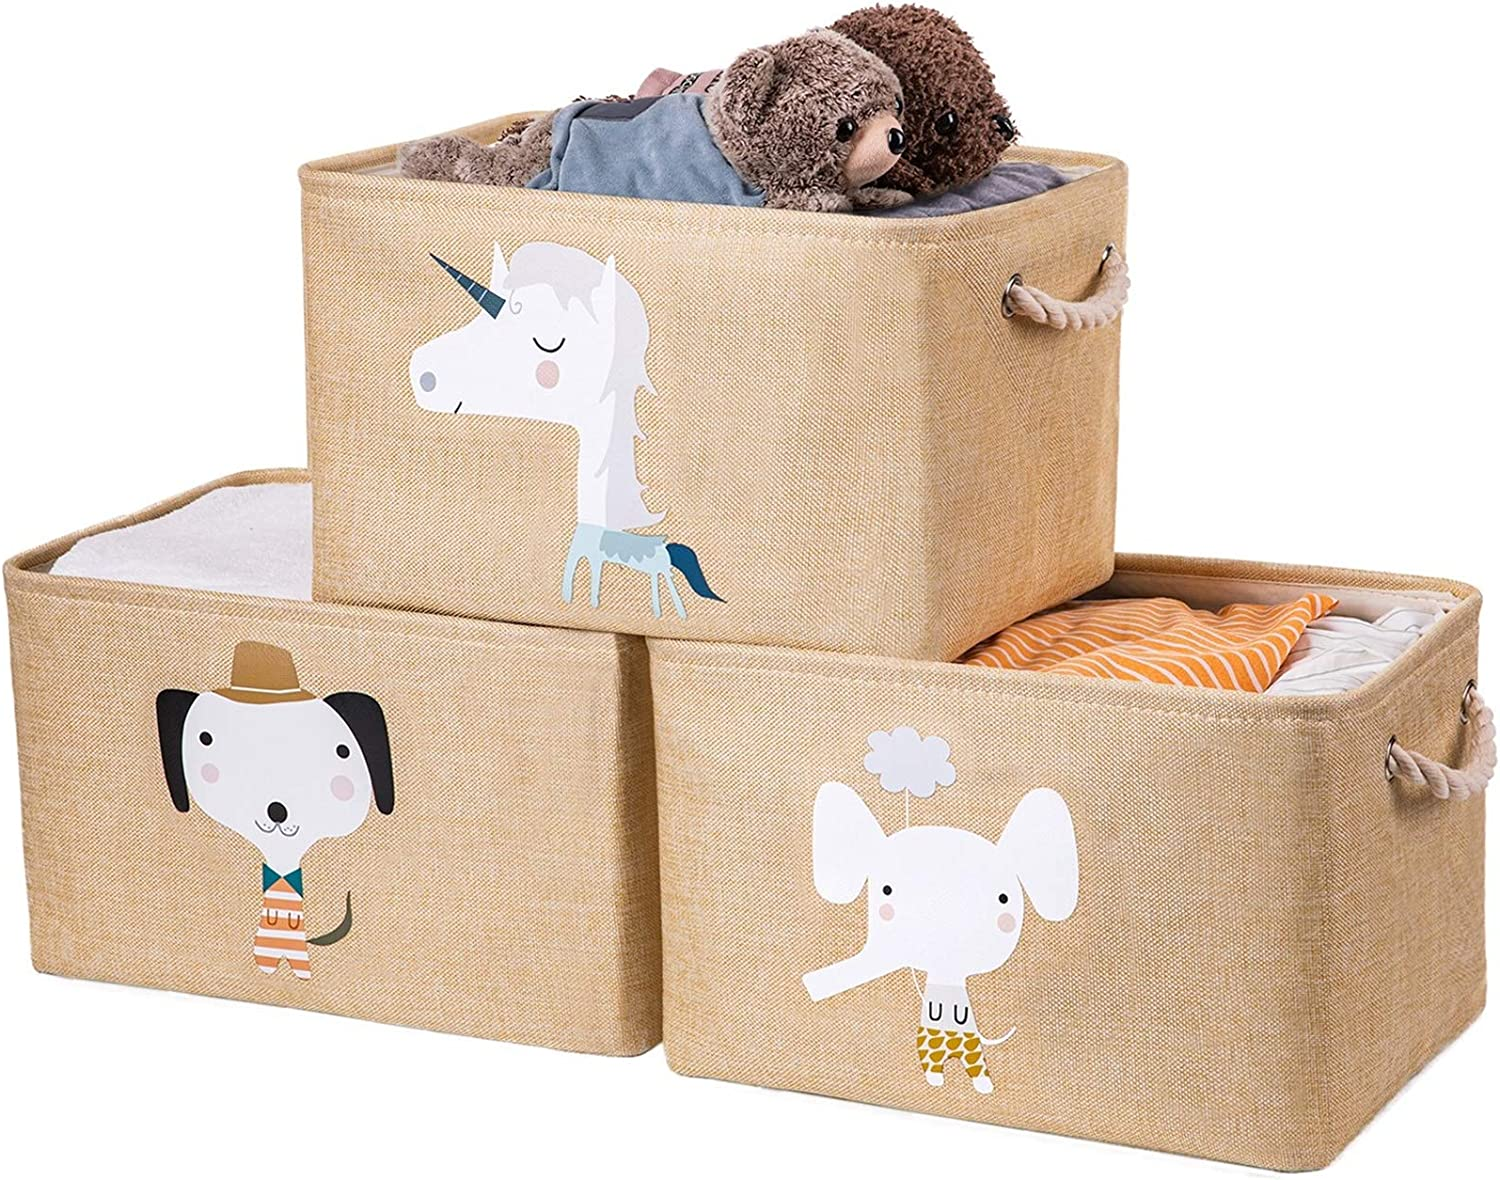 AXHOP Large Foldable Storage Bins with Cotton Rope Handles, Storage Baskets for Shelves, Fabric Storage Cubes for Organizing Shelf Nursery Home Closet & Office, Beige Unicorn 3-Pack Set